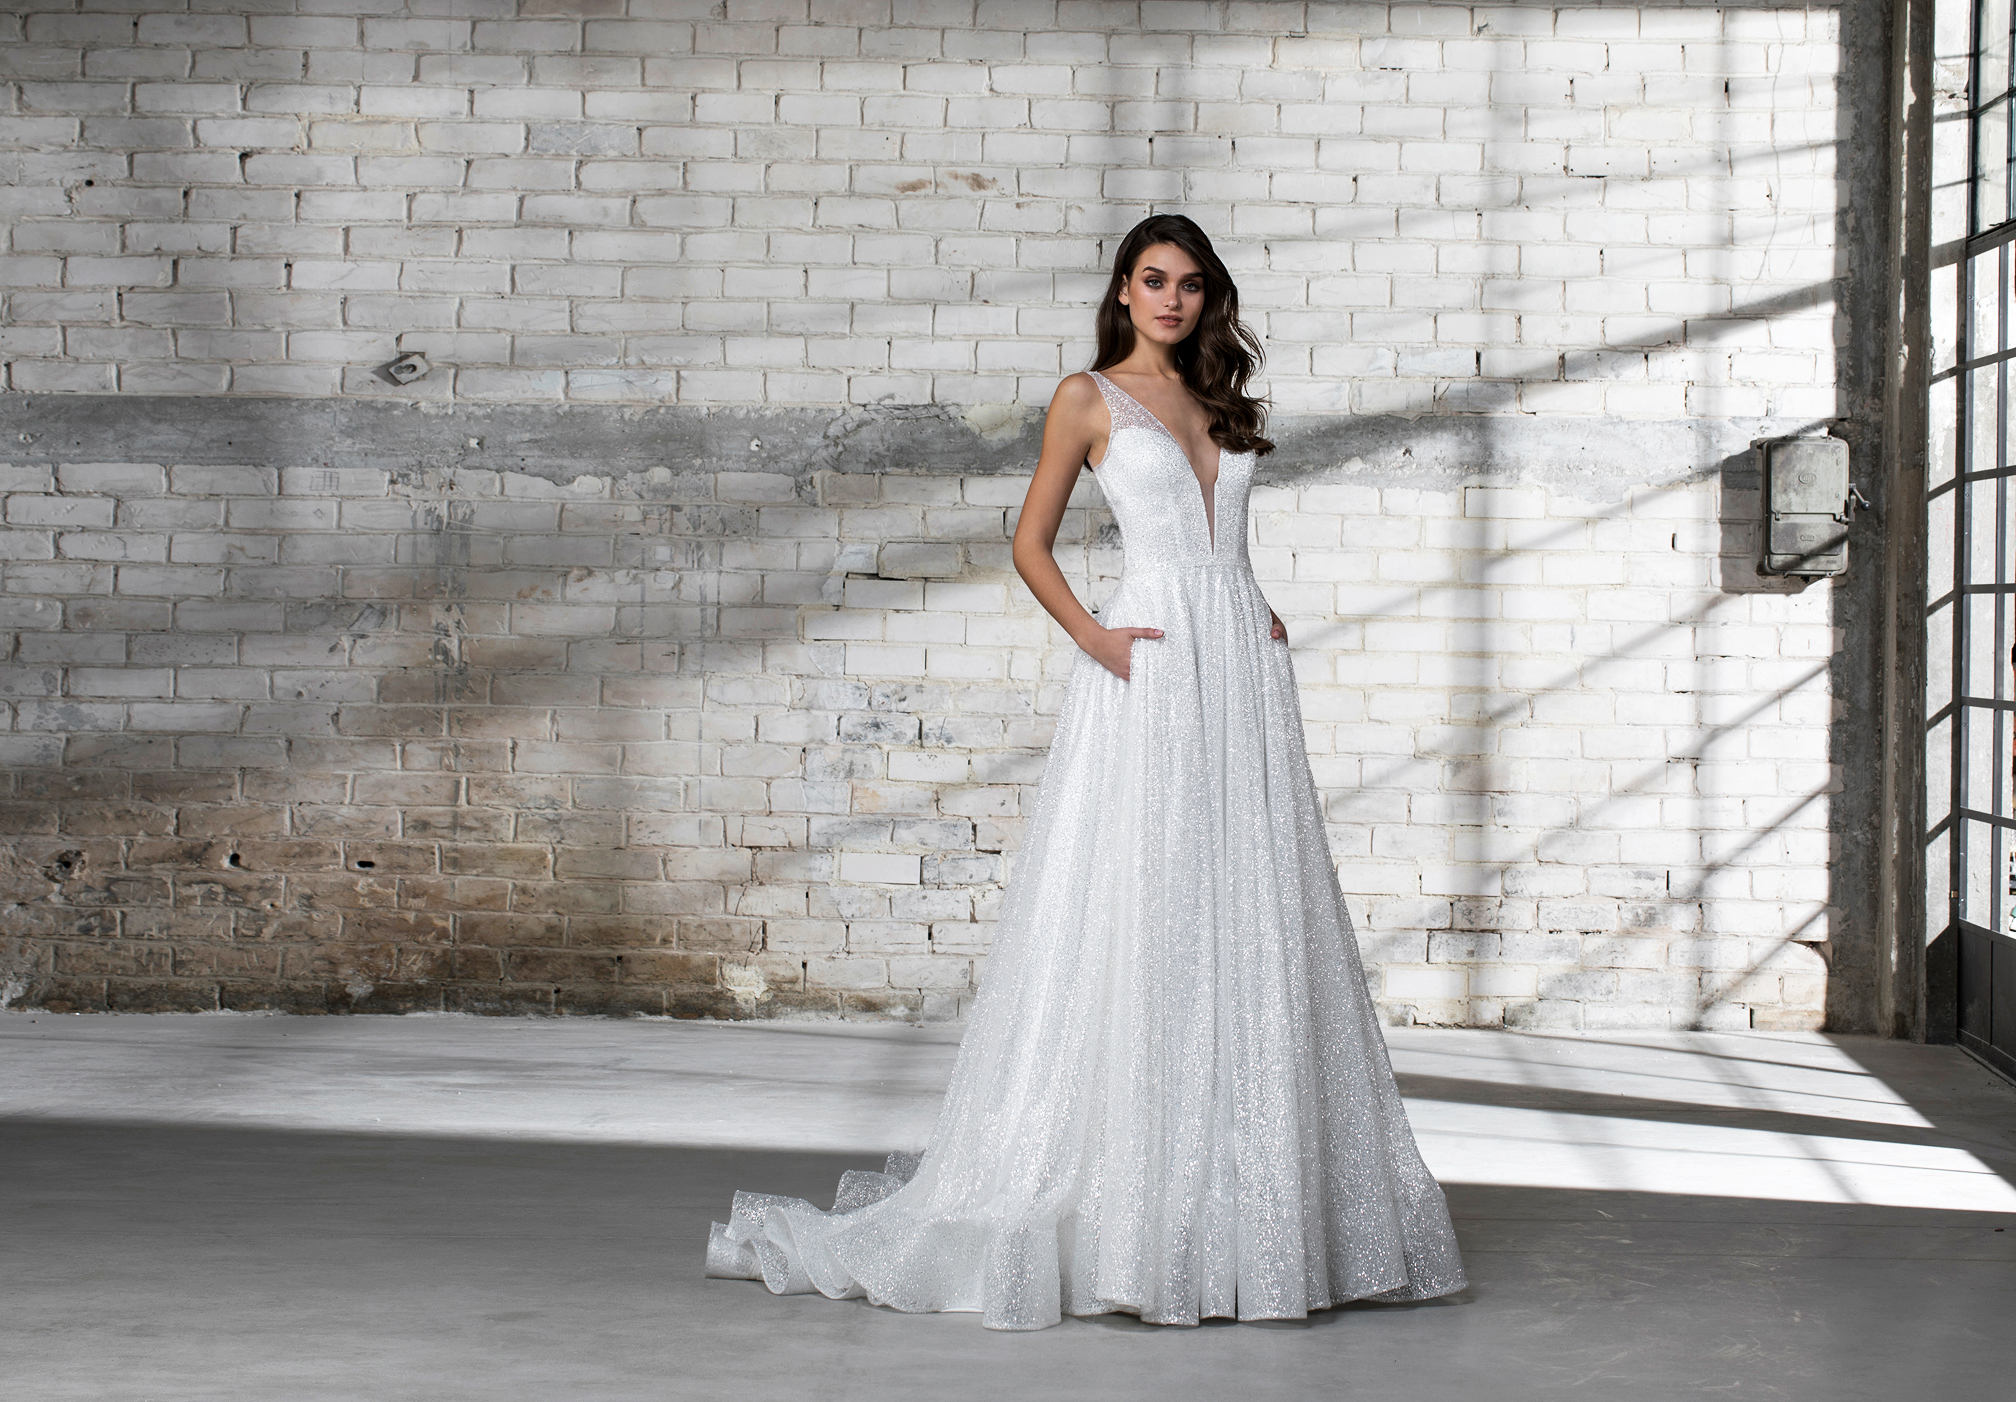 pnina tornai wedding dress spring 2019 sleeveless a-line sparkly